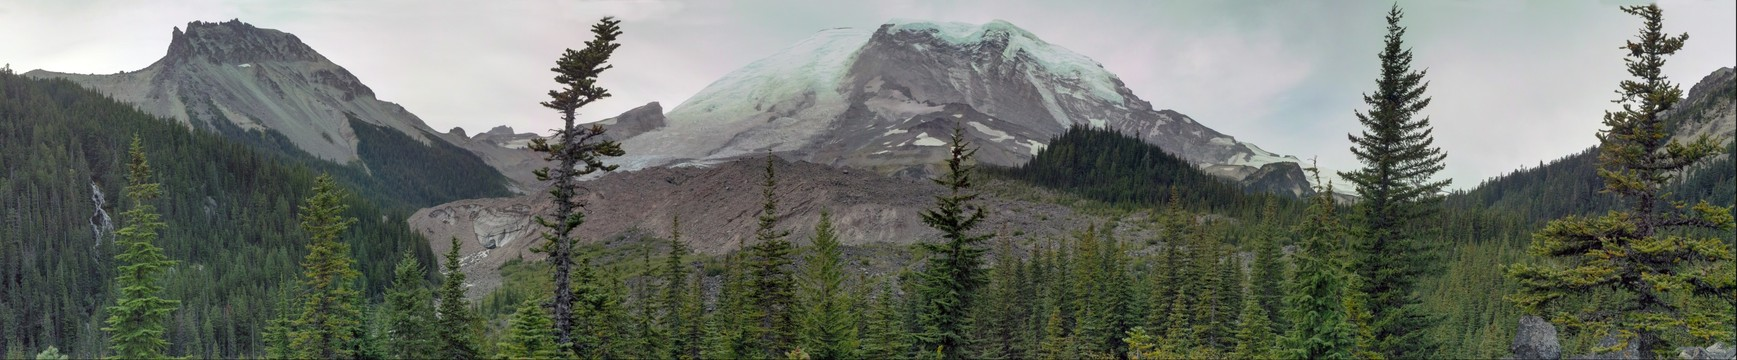 Mt Ranier from the North